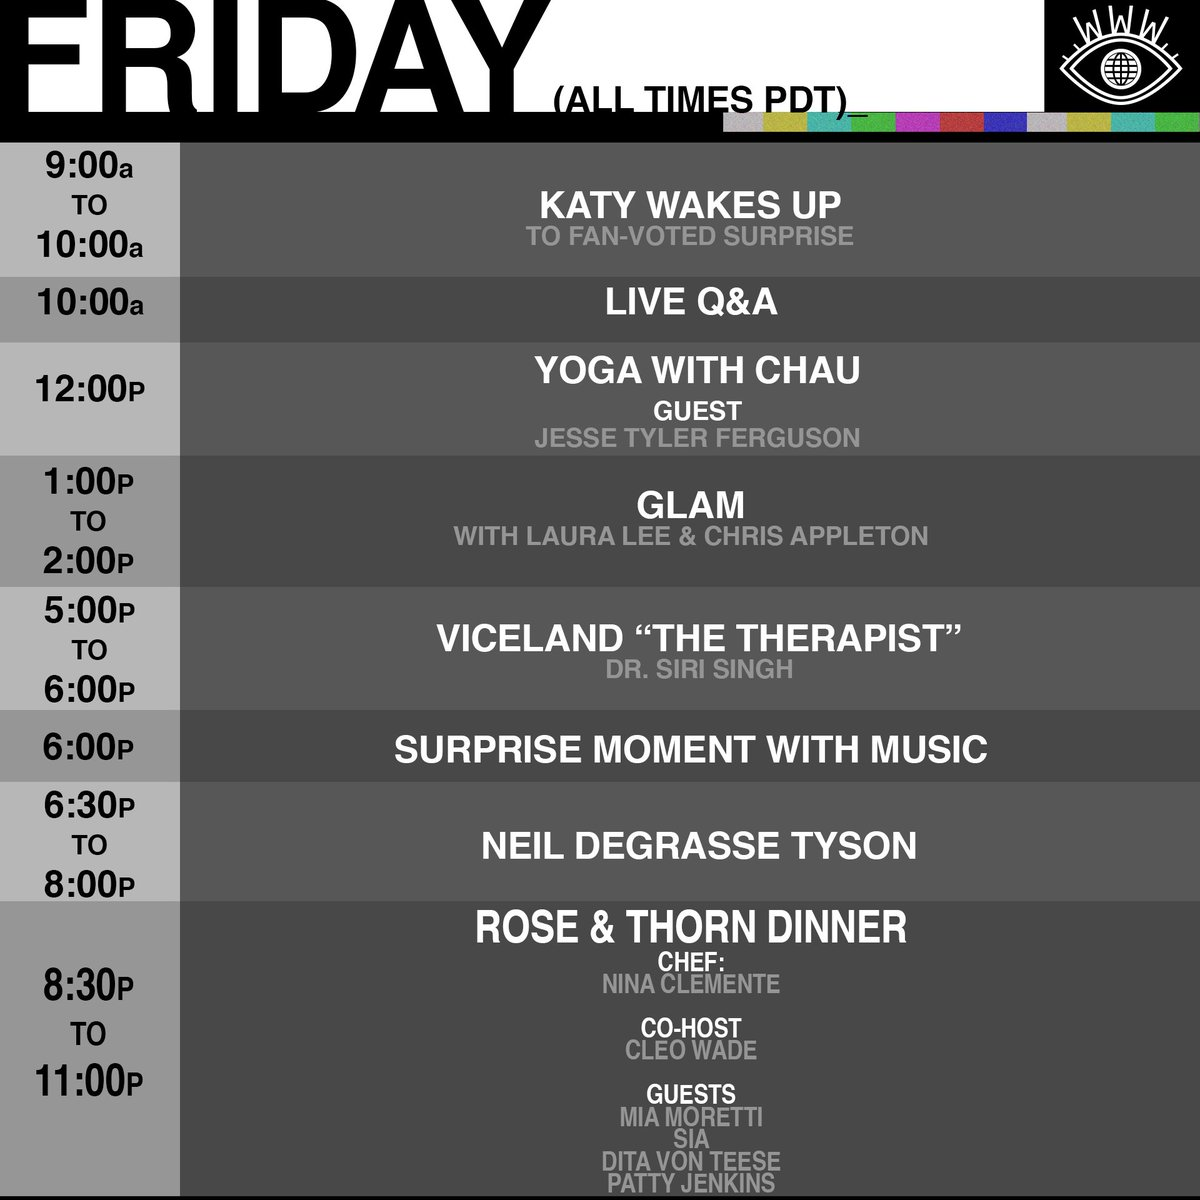 Today on #KPWWW https://t.co/EJOsFazFtu -Team Katy https://t.co/UBh9v7EEgL